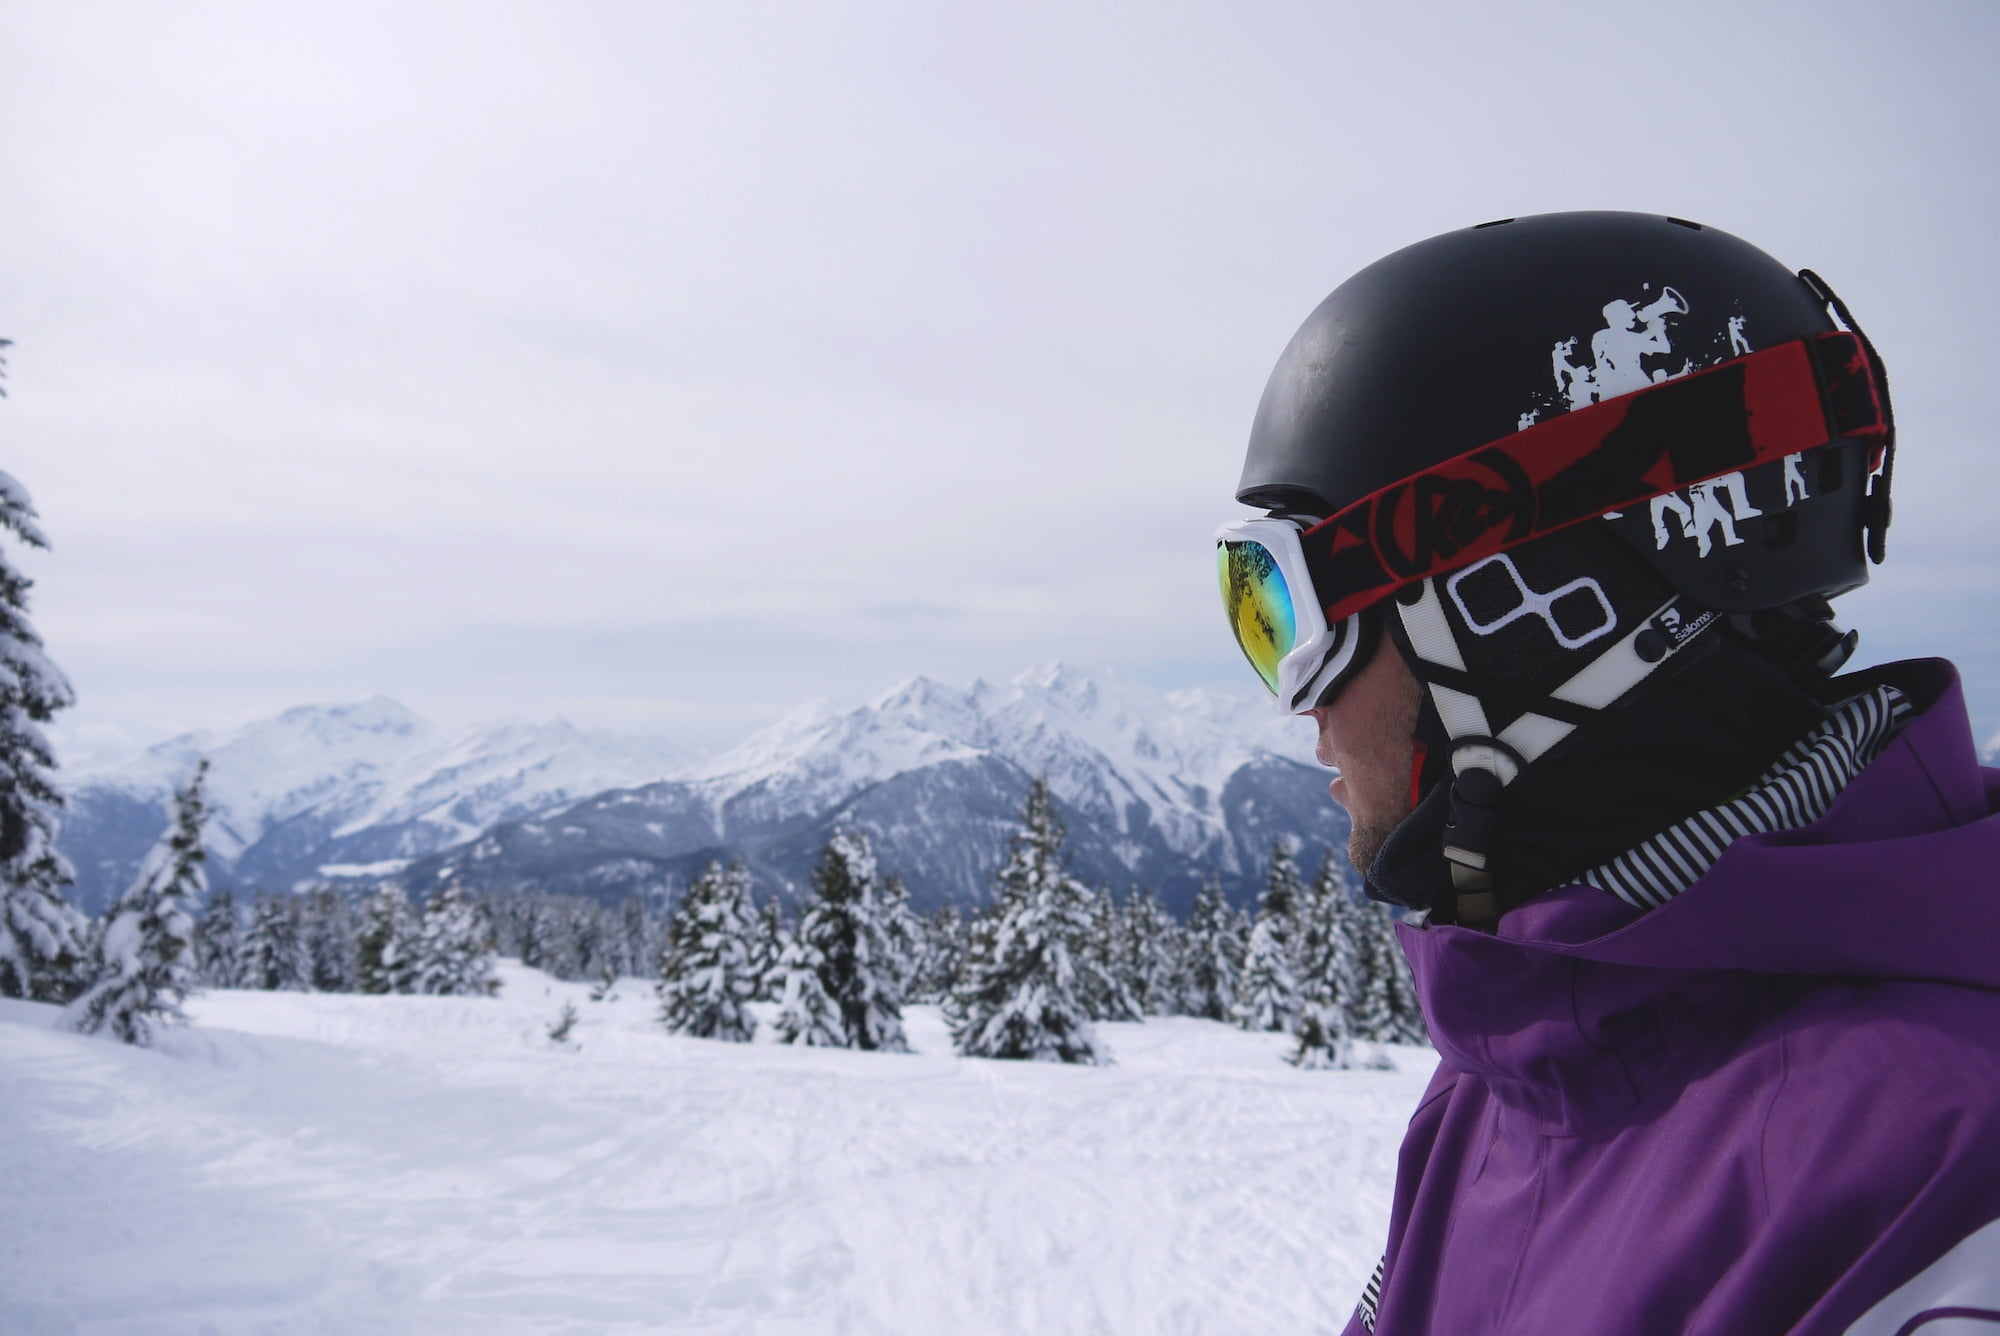 4 Tips For Shooting a Great GoPro Ski Video